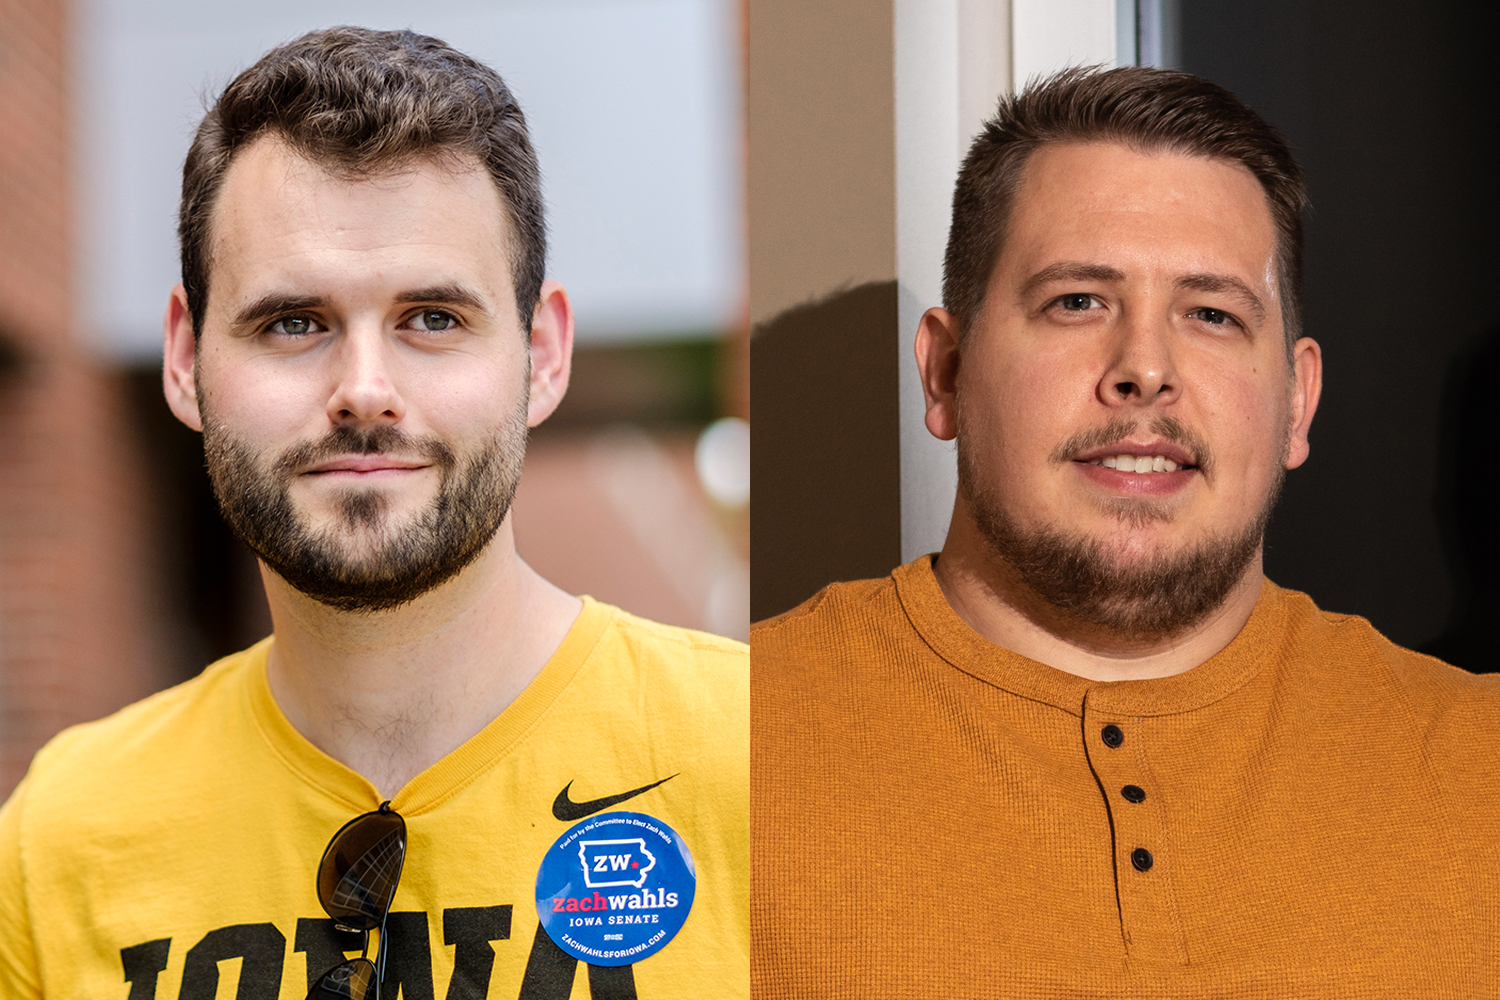 Zach Wahls (left) and Carl Krambeck (right) are running for Iowa state Senate in the 37th District.